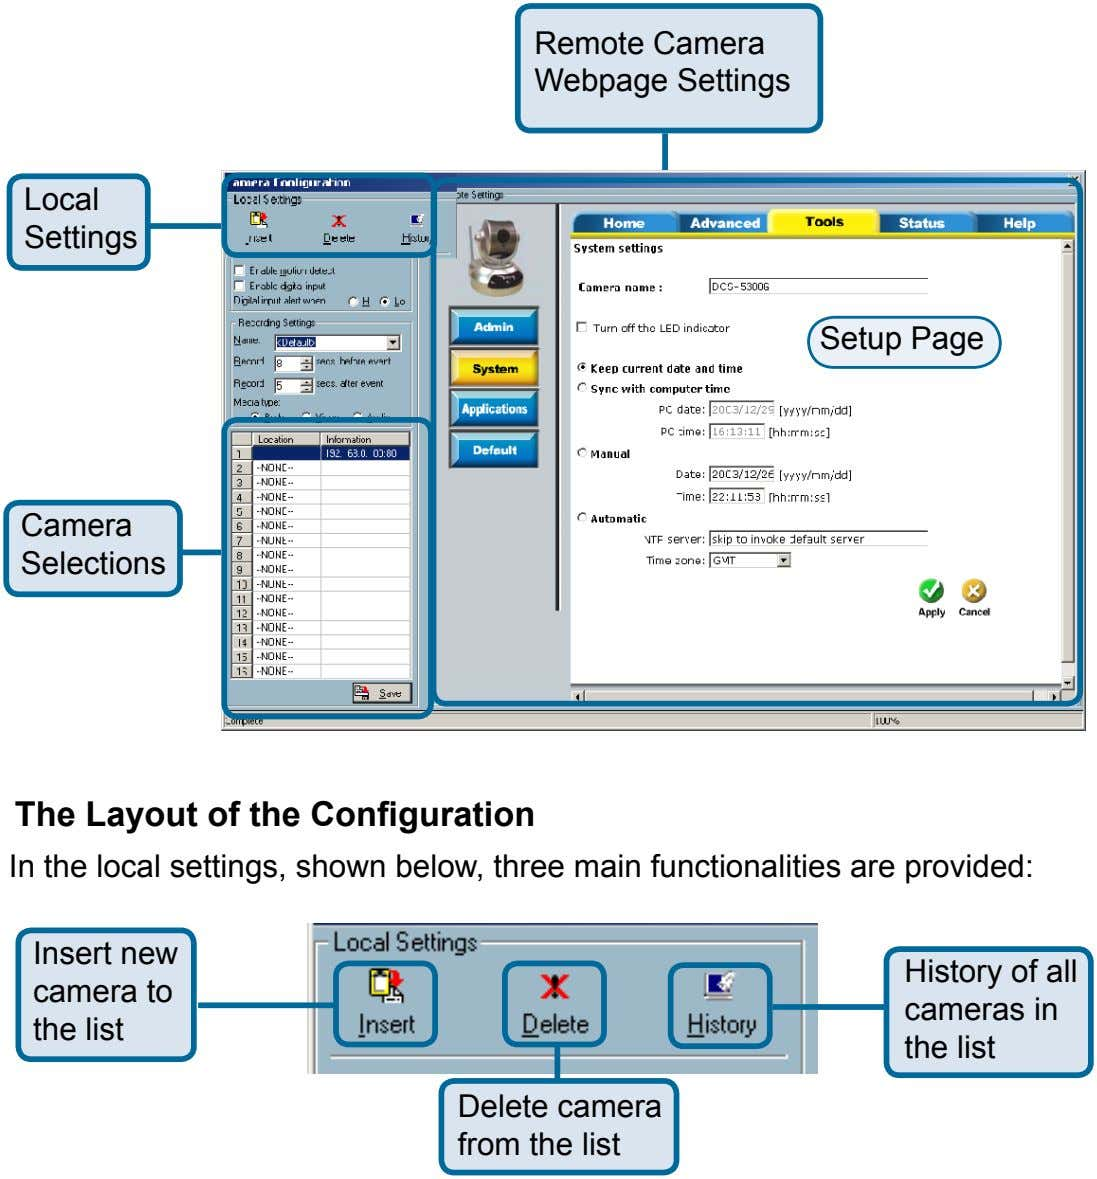 Remote Camera Webpage Settings Local Settings Setup Page Camera Selections The Layout of the Configuration